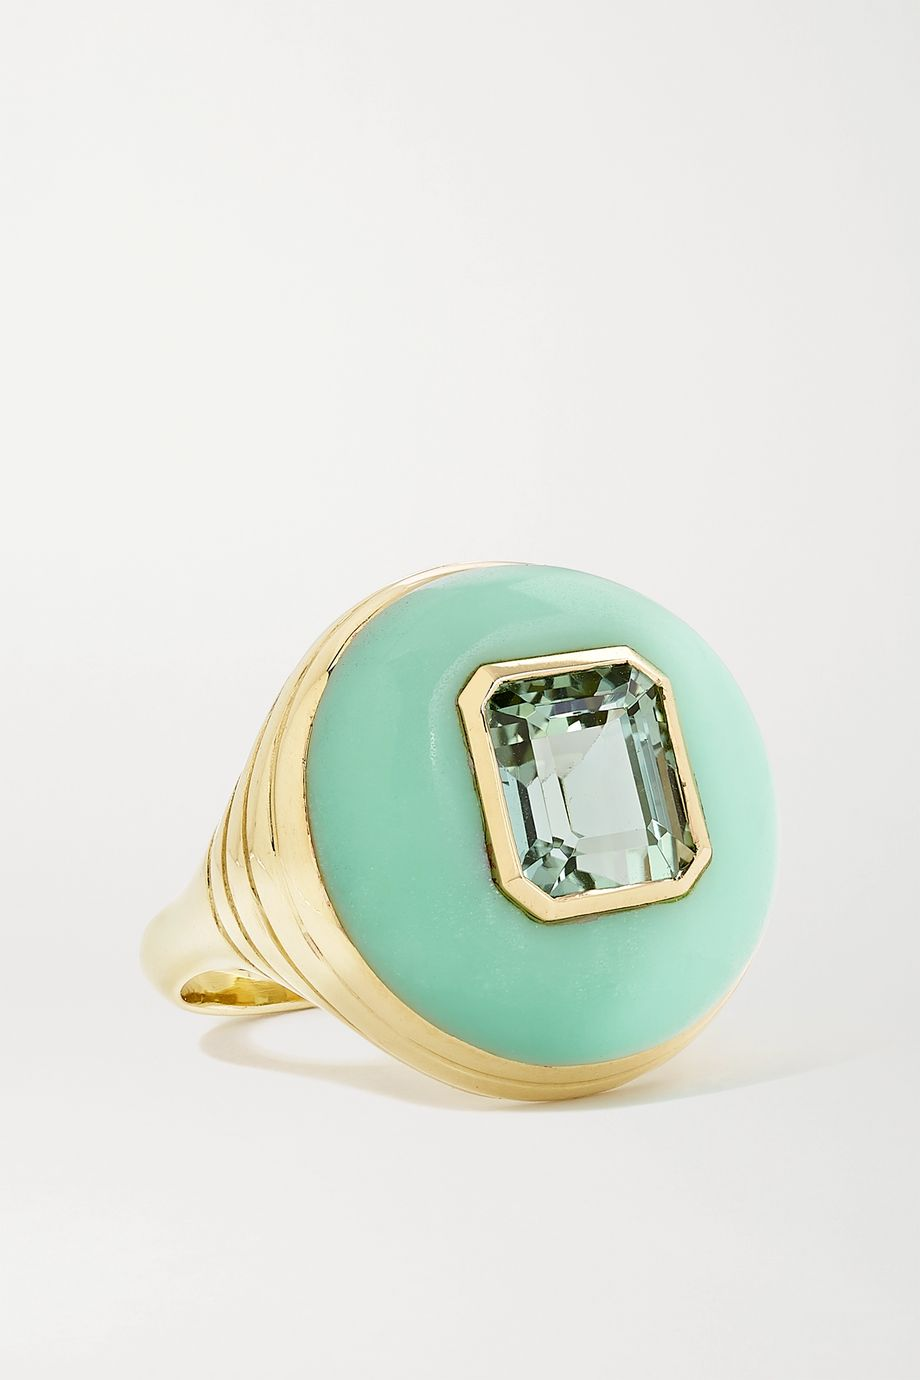 Retrouvaí Bague en or 14 carats, chrysoprase et tournmaline Lollipop Small